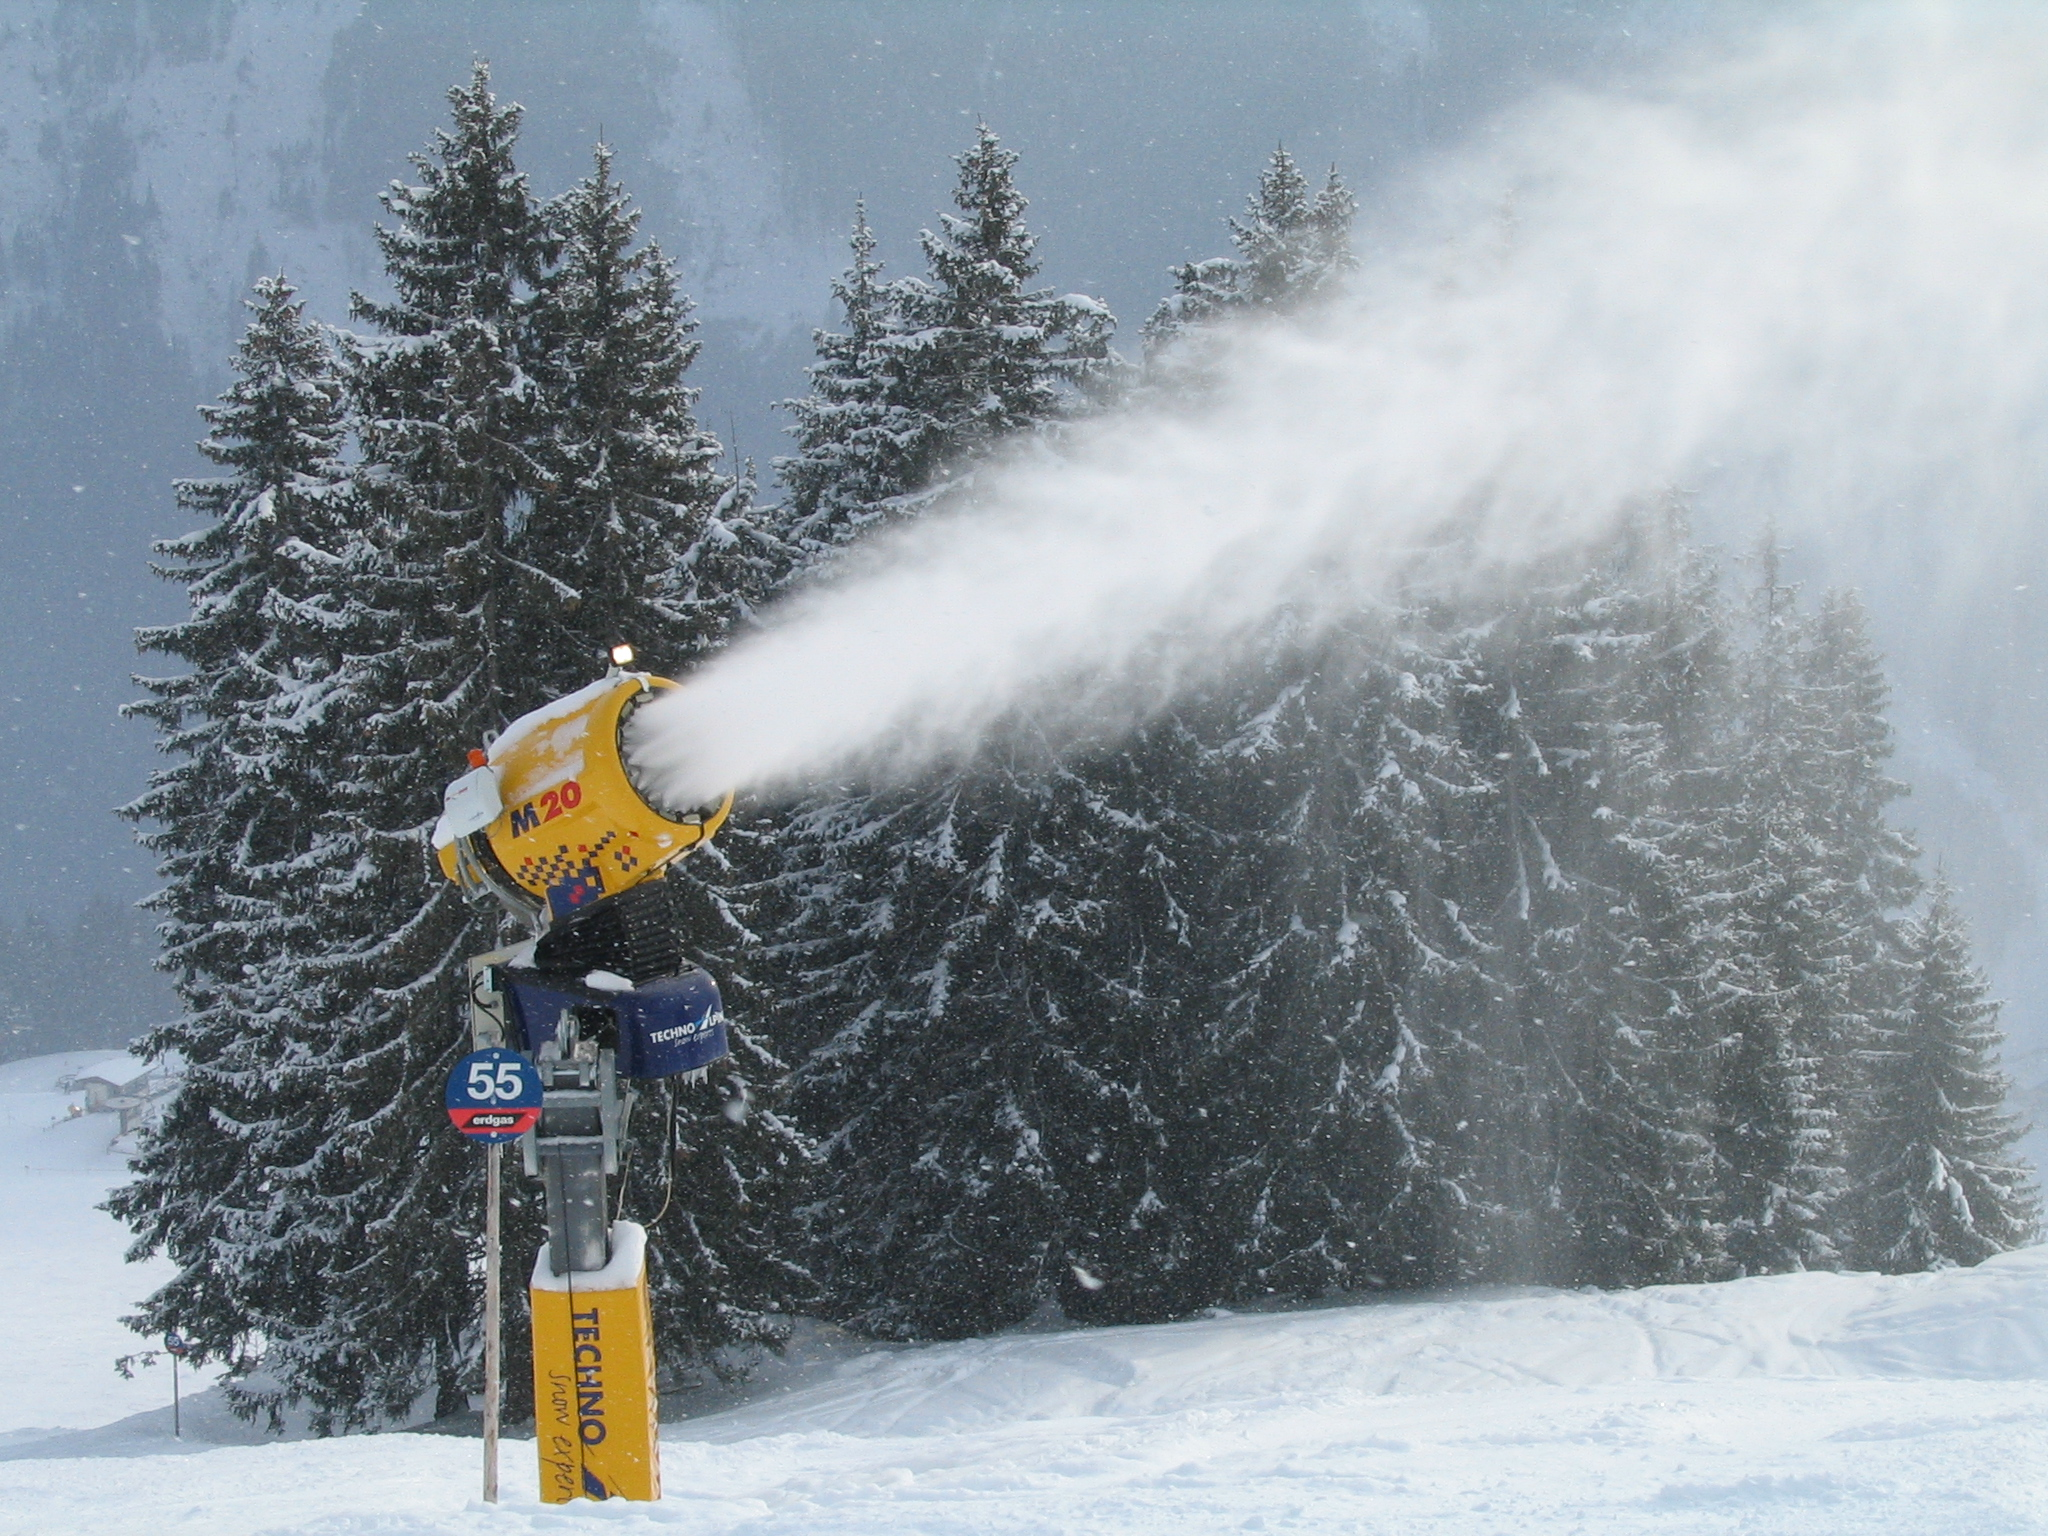 https://upload.wikimedia.org/wikipedia/commons/b/b6/Snow_cannon_Saalbach.JPG